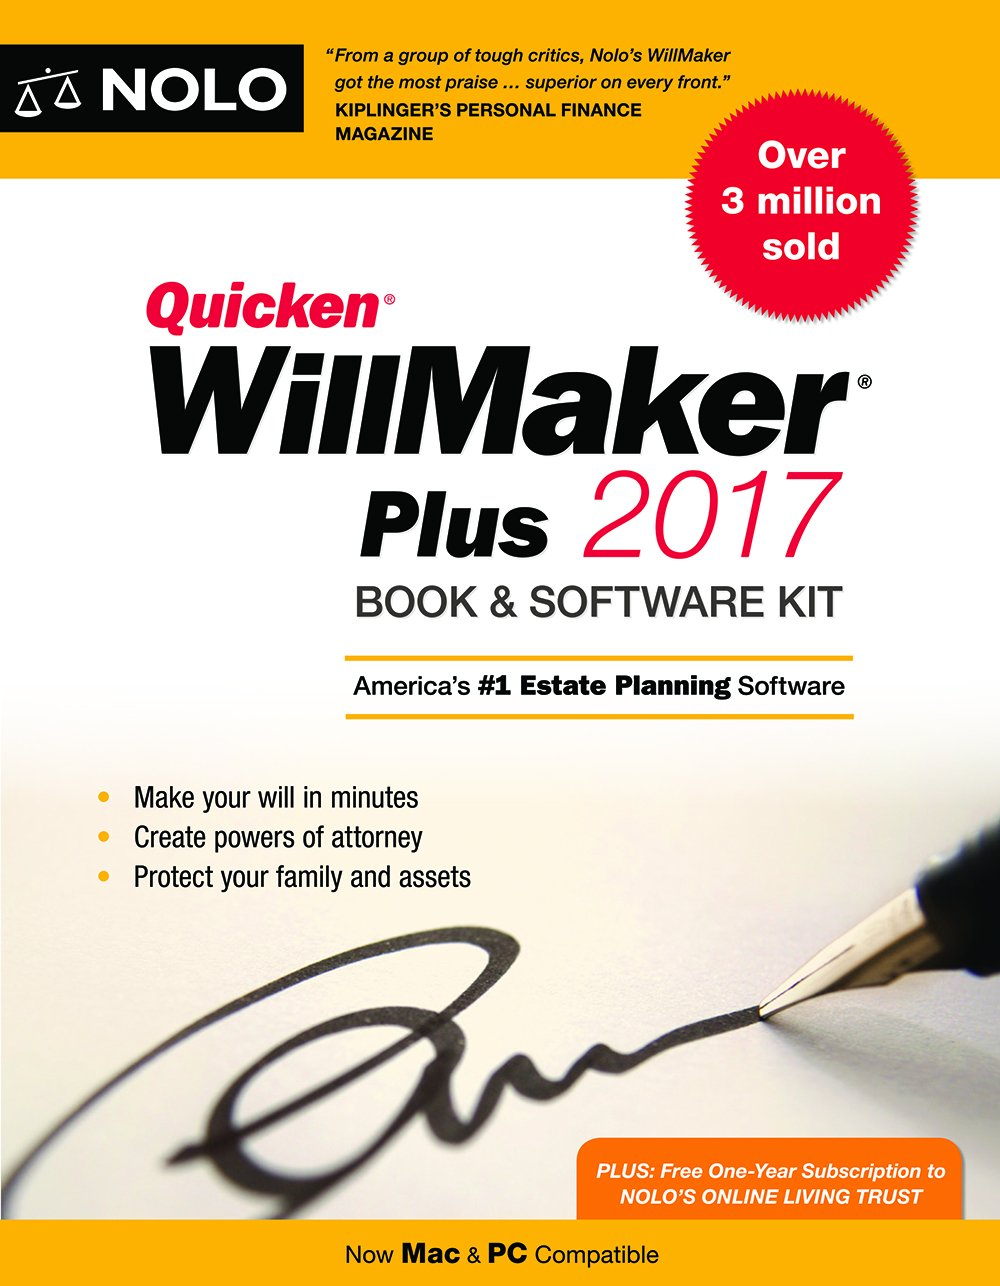 Quicken Willmaker Plus 2017: Book & Software Kit: Amazon.es: Nolo: Libros en idiomas extranjeros